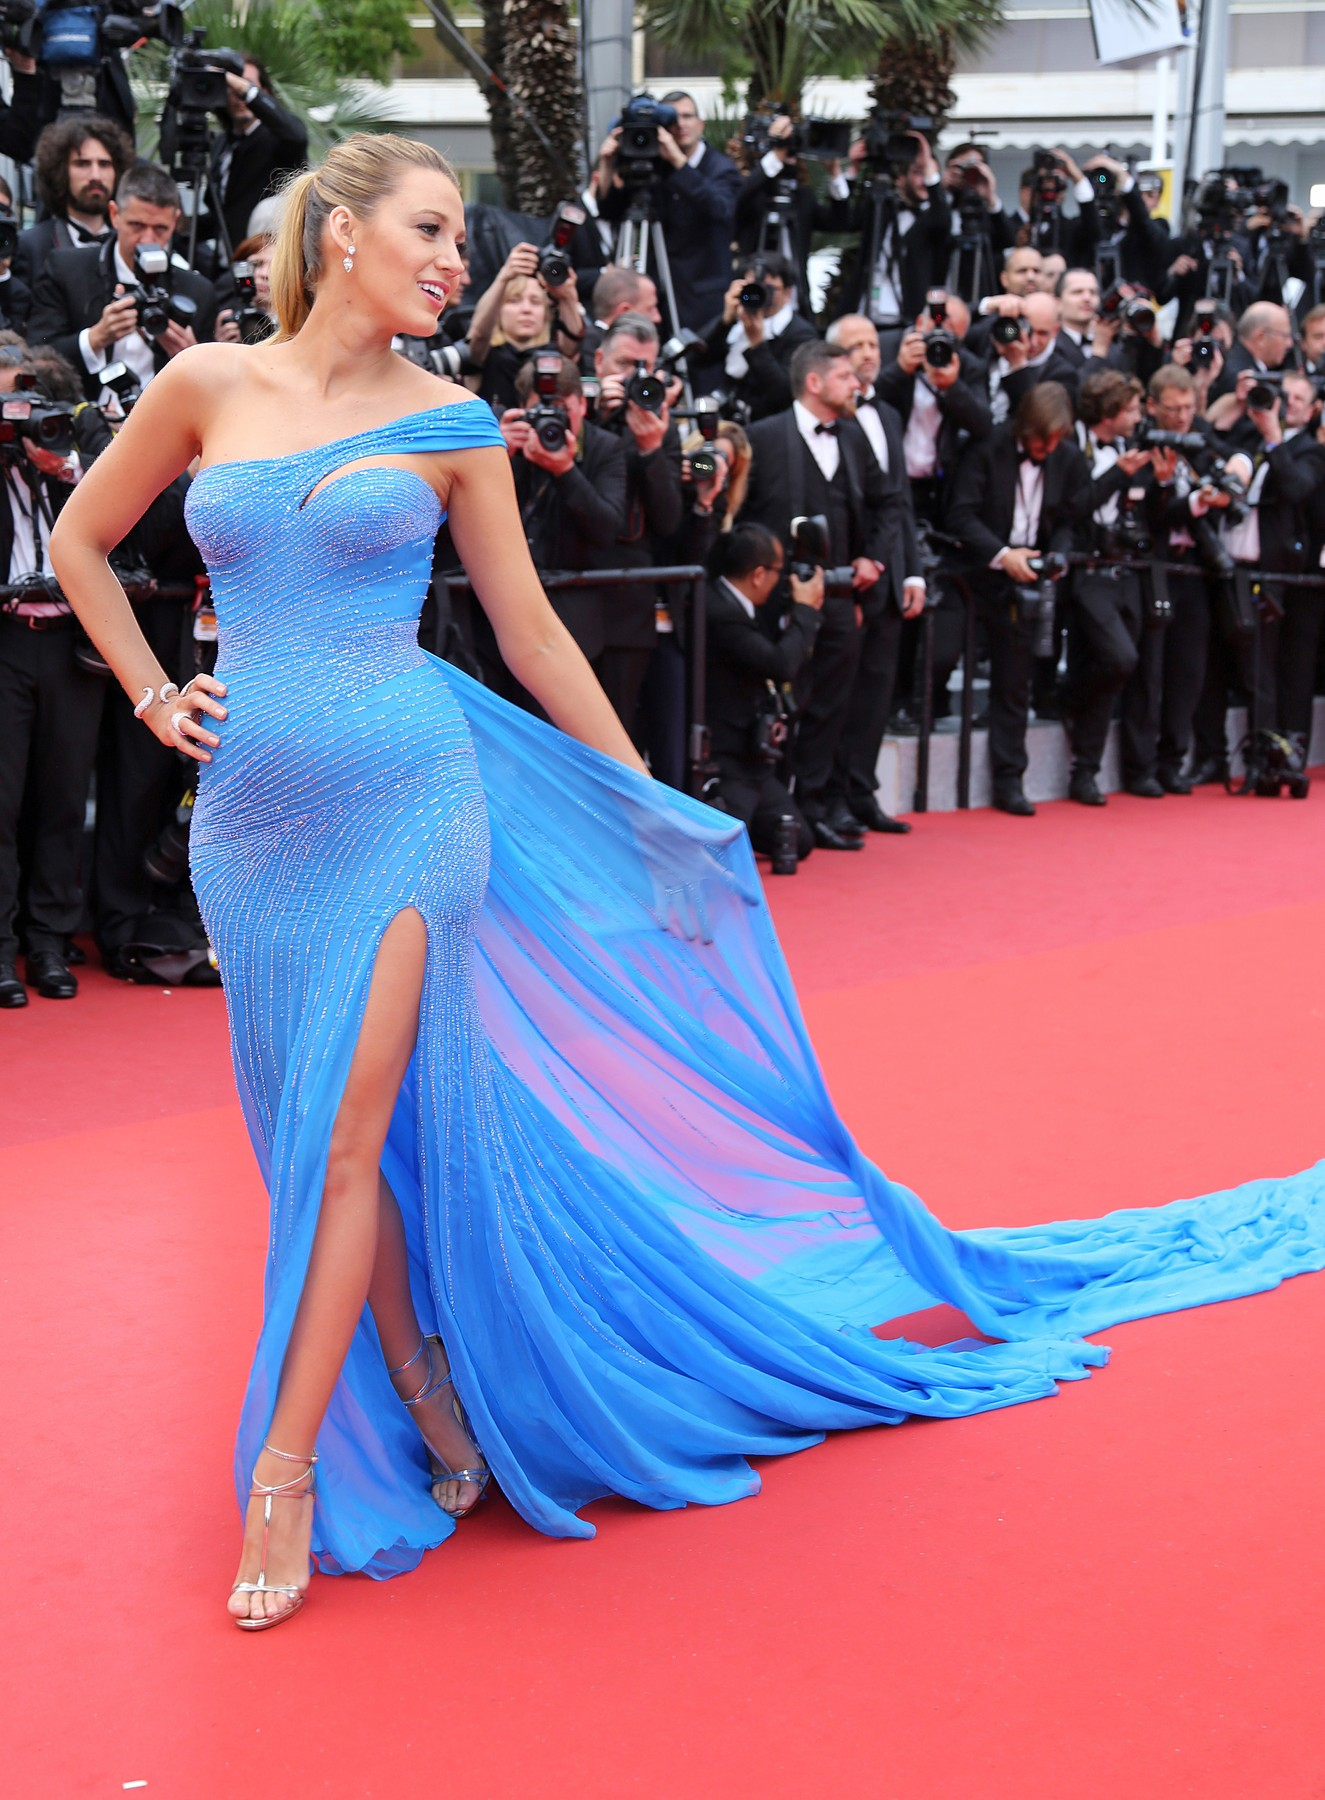 Blake Lively arrives on the red carpet before the screening of the film